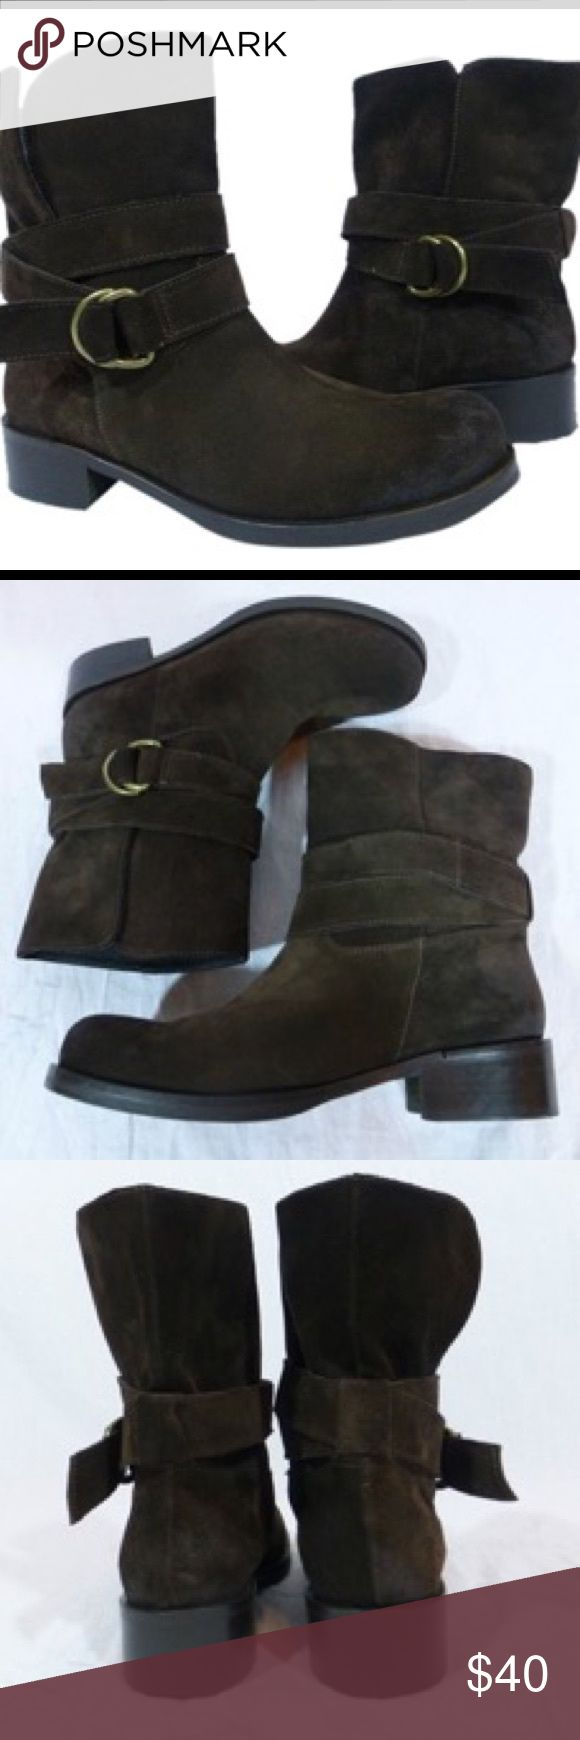 Latitude Brown Suede Buckle Ankle Boots Brown suede ankle boots with a buckle on the outside Shoes Ankle Boots & Booties